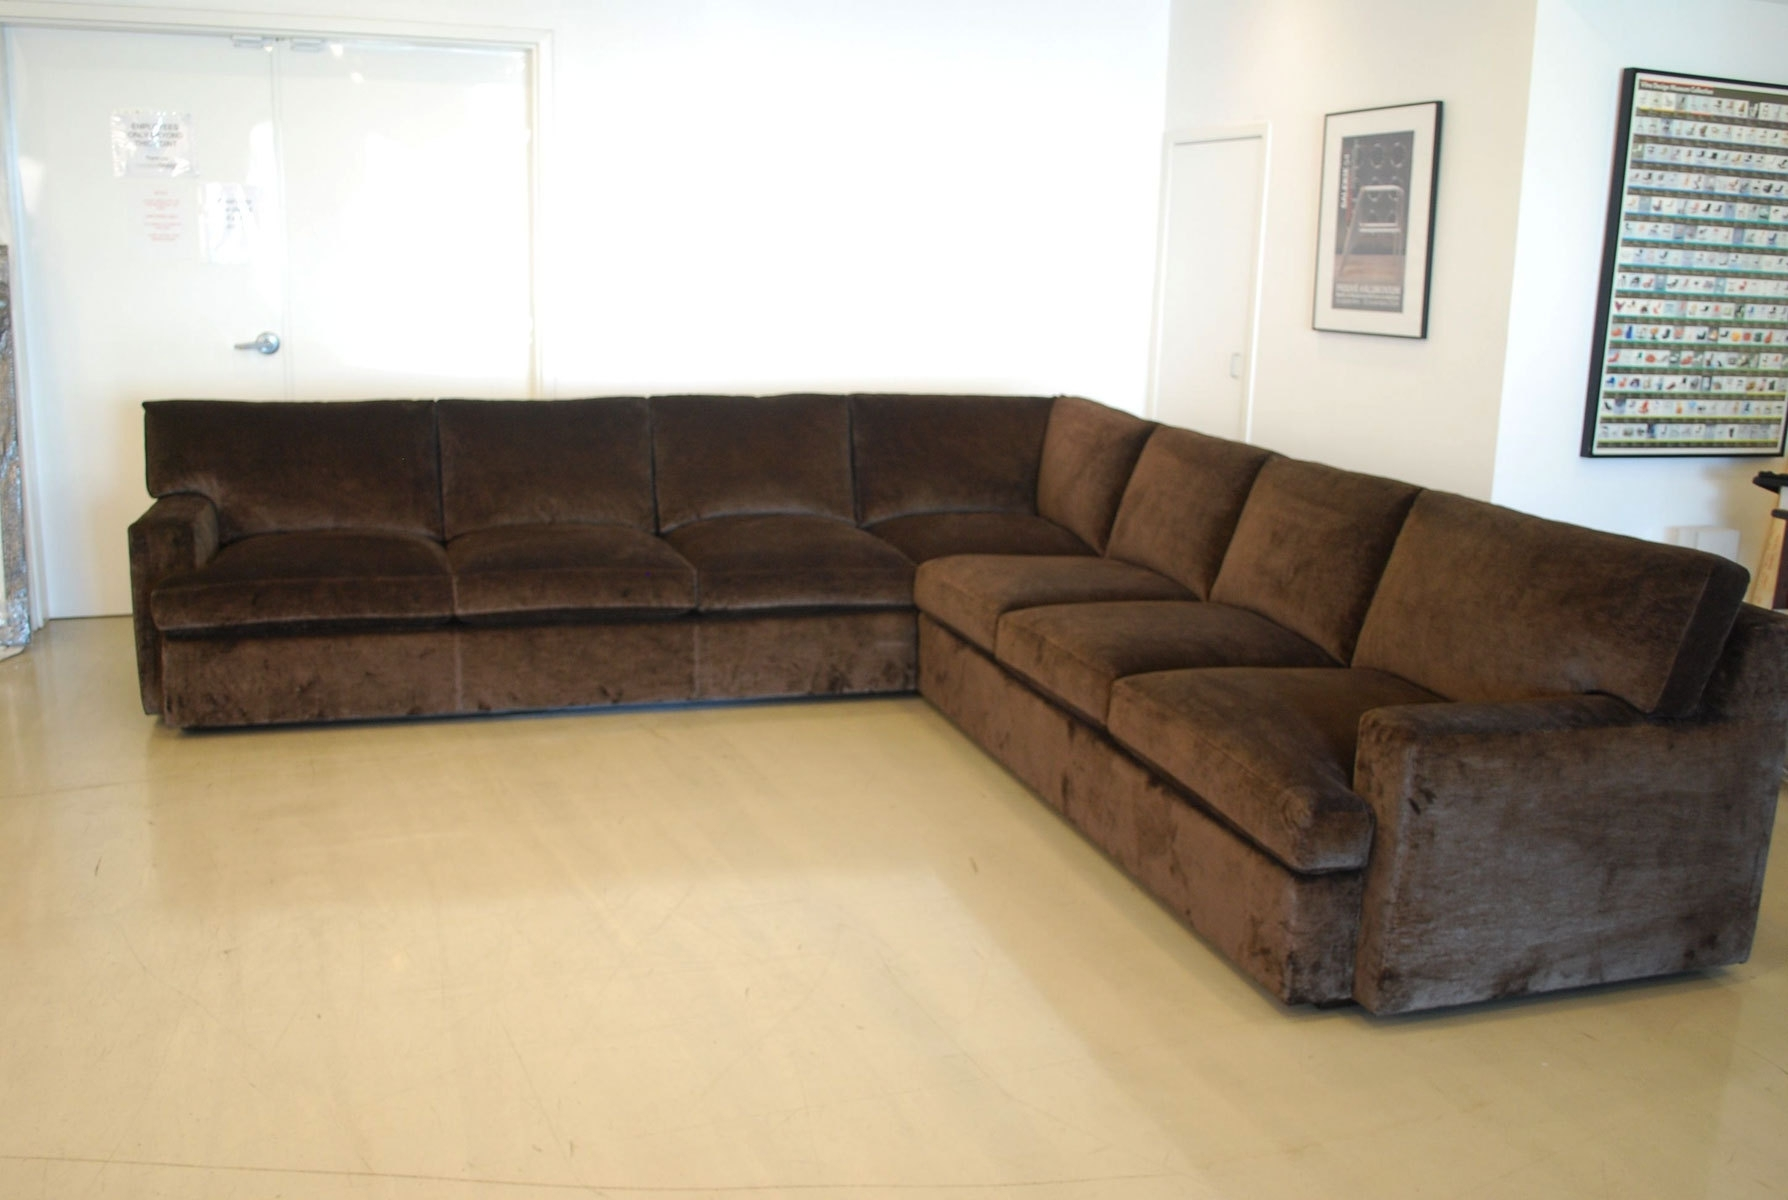 Amusing Large L Shaped Sectional Sofas 99 On The Brick Sofa Bed With Regard To Sectional Sofas At Brick (View 5 of 10)